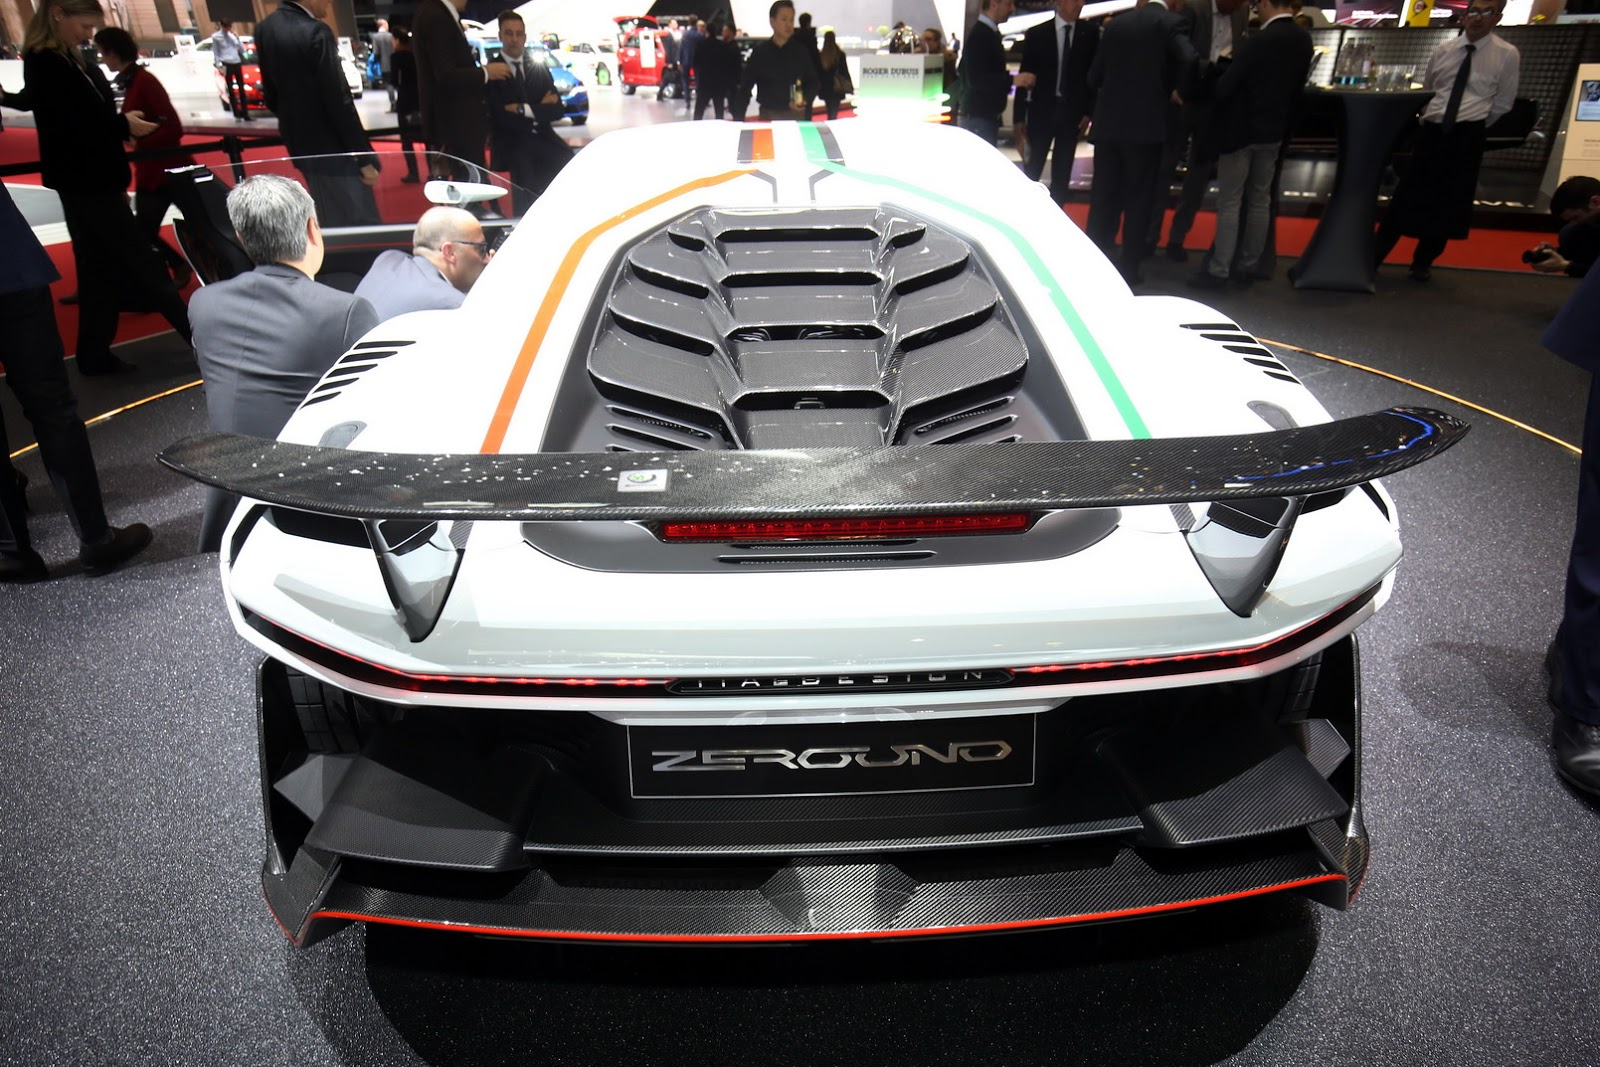 Italdesign Zerouno (5)